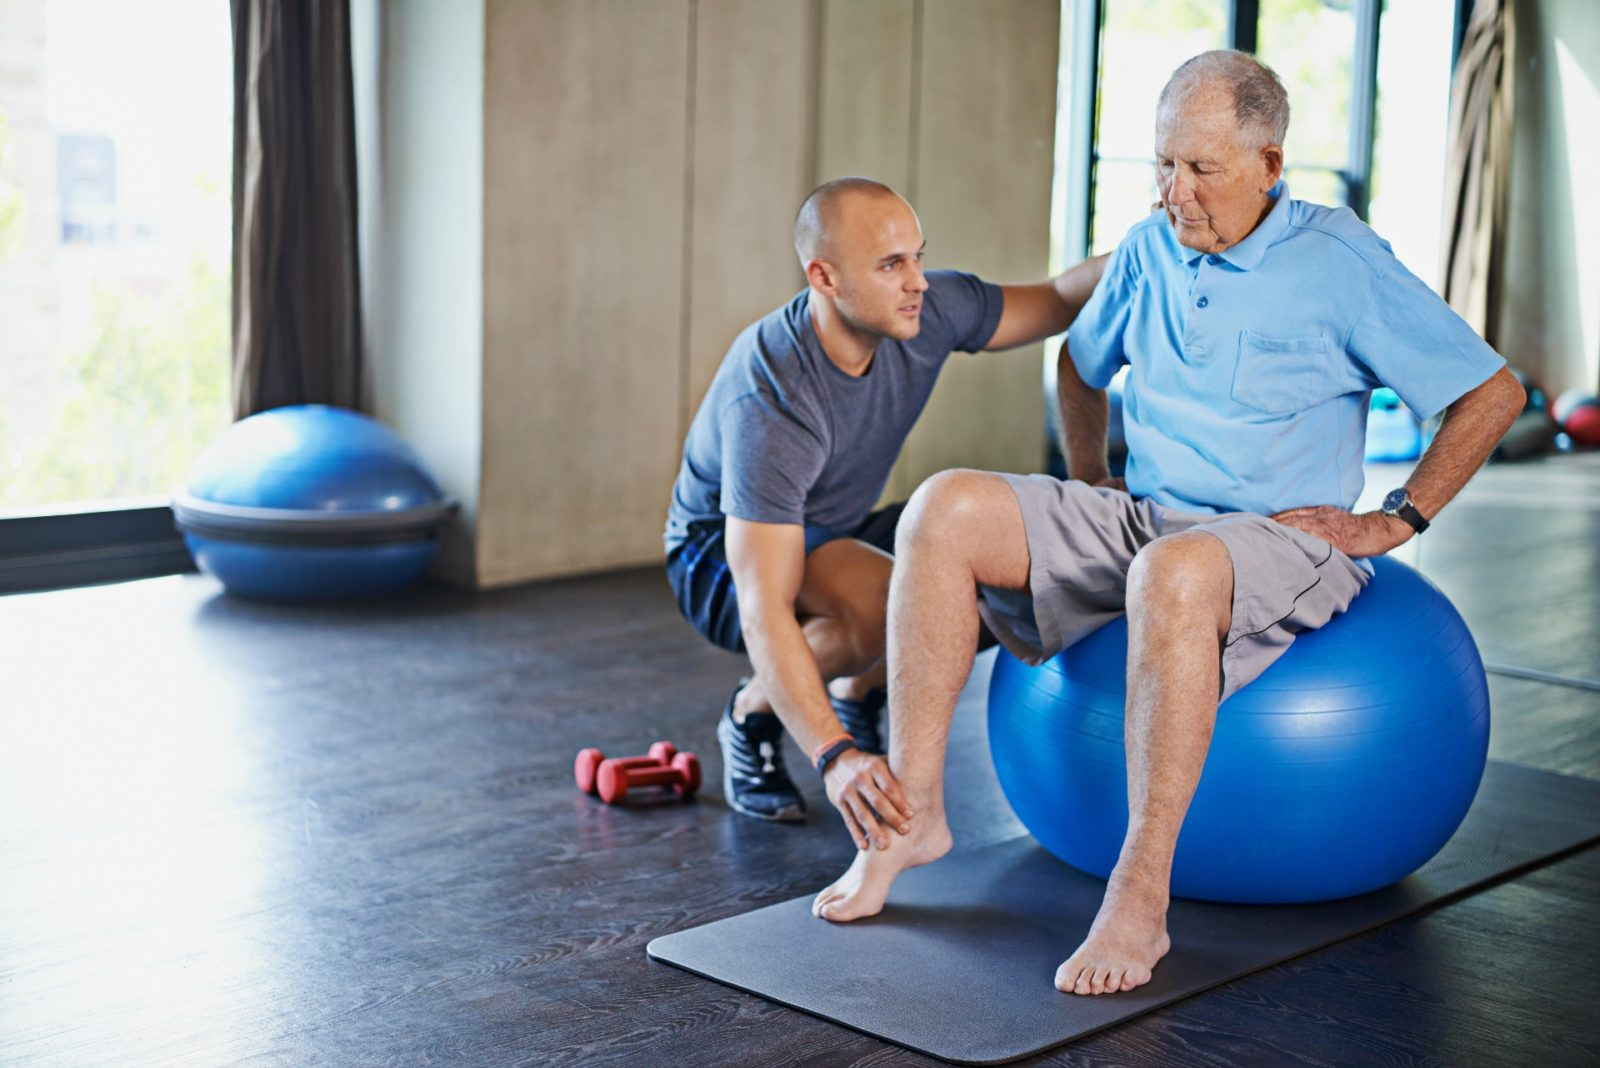 Sitting on a ball with your feet on the floor and your back straight while bouncing is a great weight-bearing exercise.